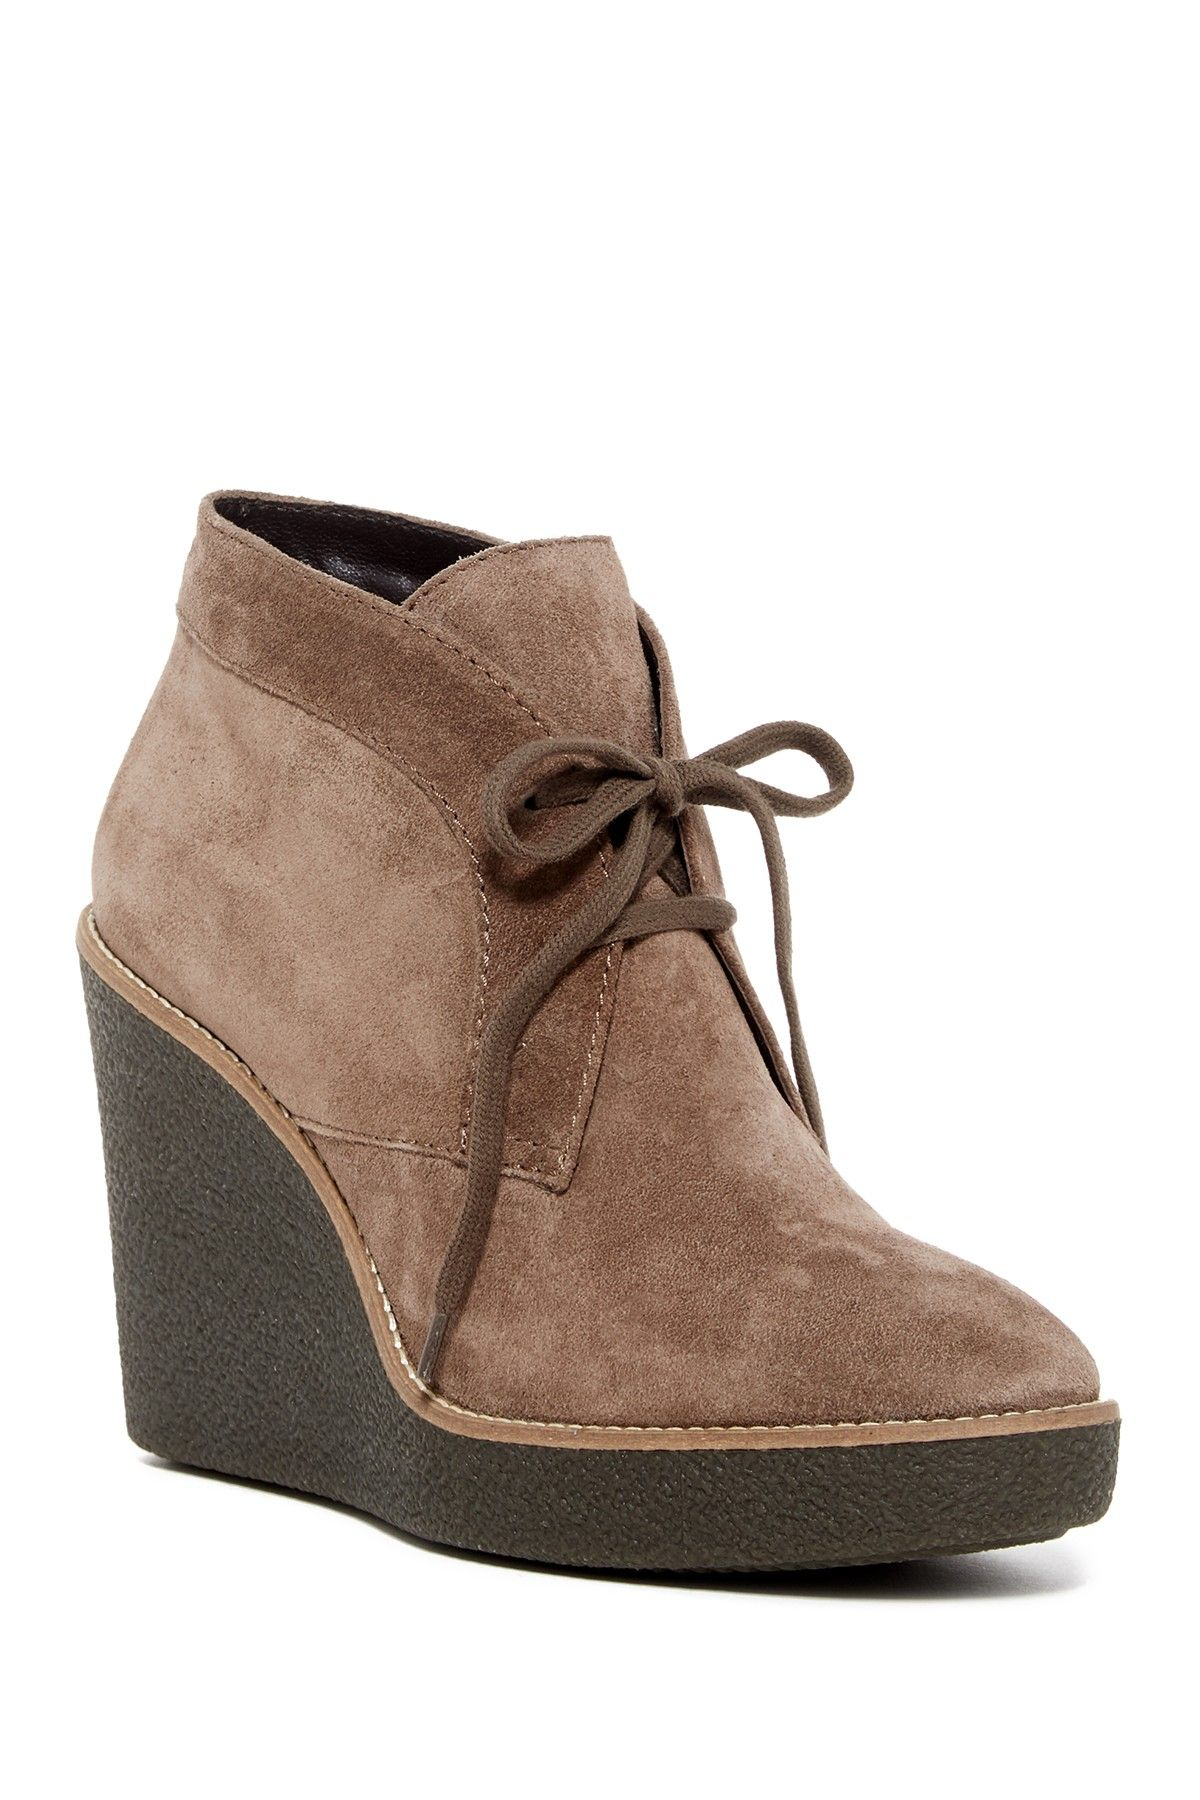 Aquatalia Vianna Weatherproof Wedge Bootie Cute Shoes Wedges